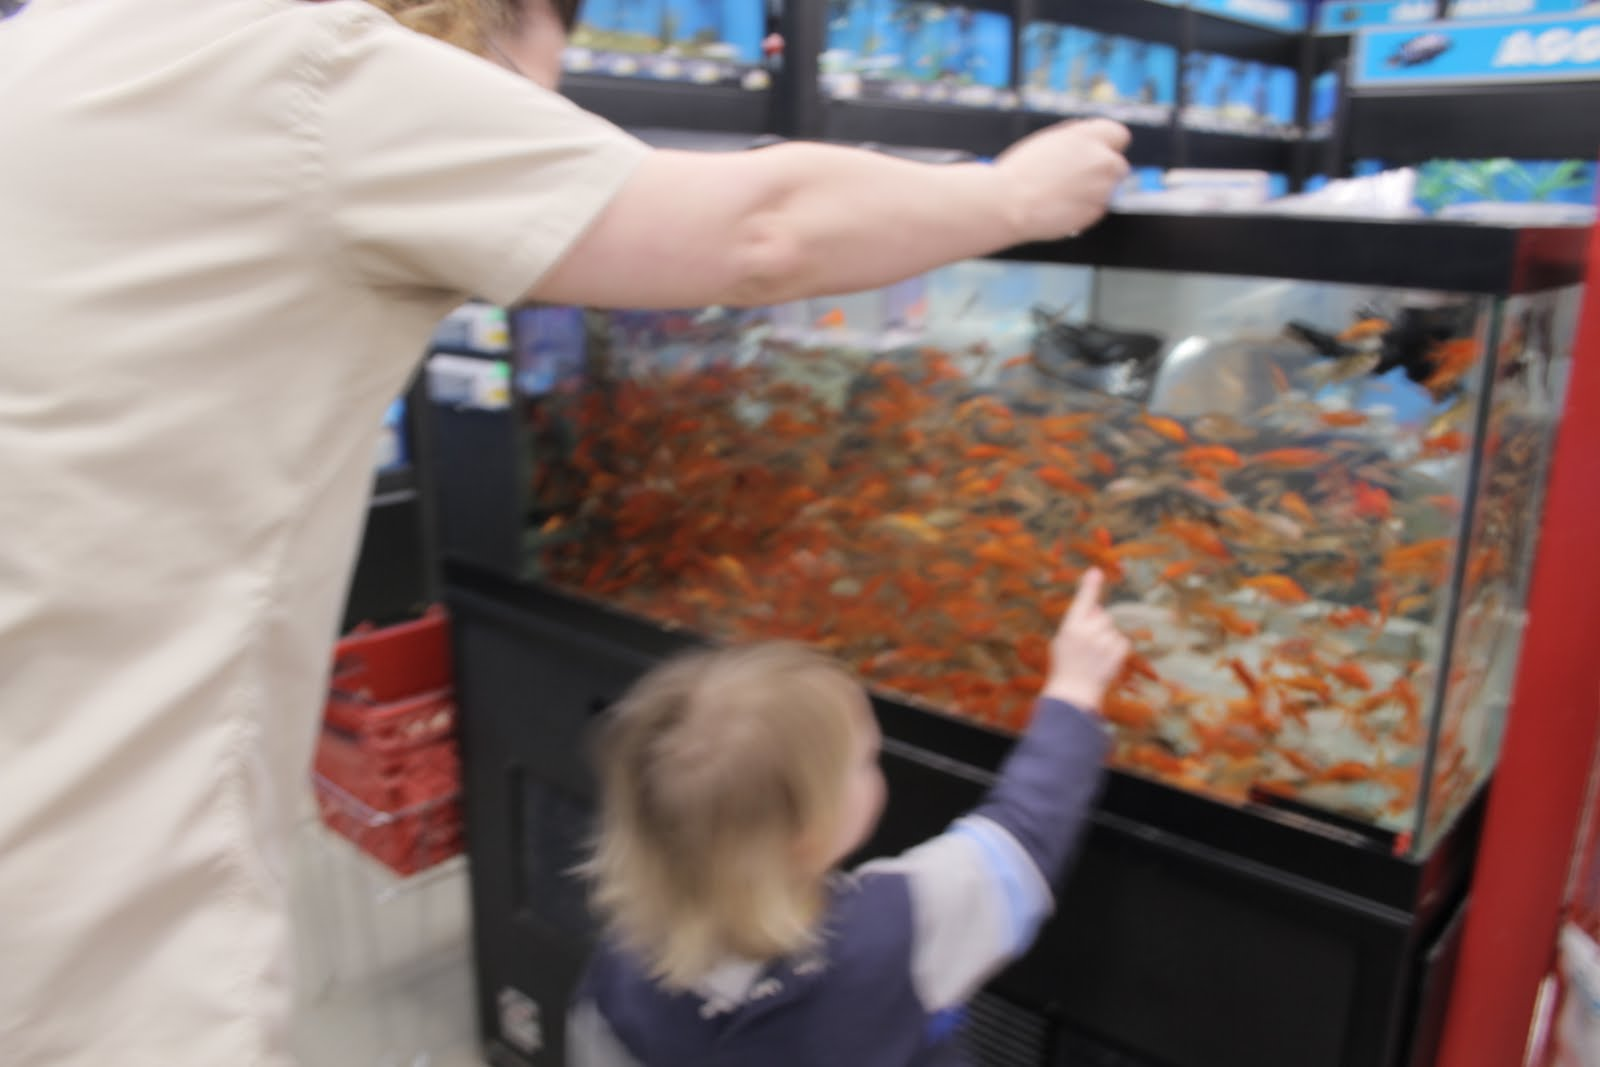 Nana 39 s school learning through play april 2011 for Feeder fish petco